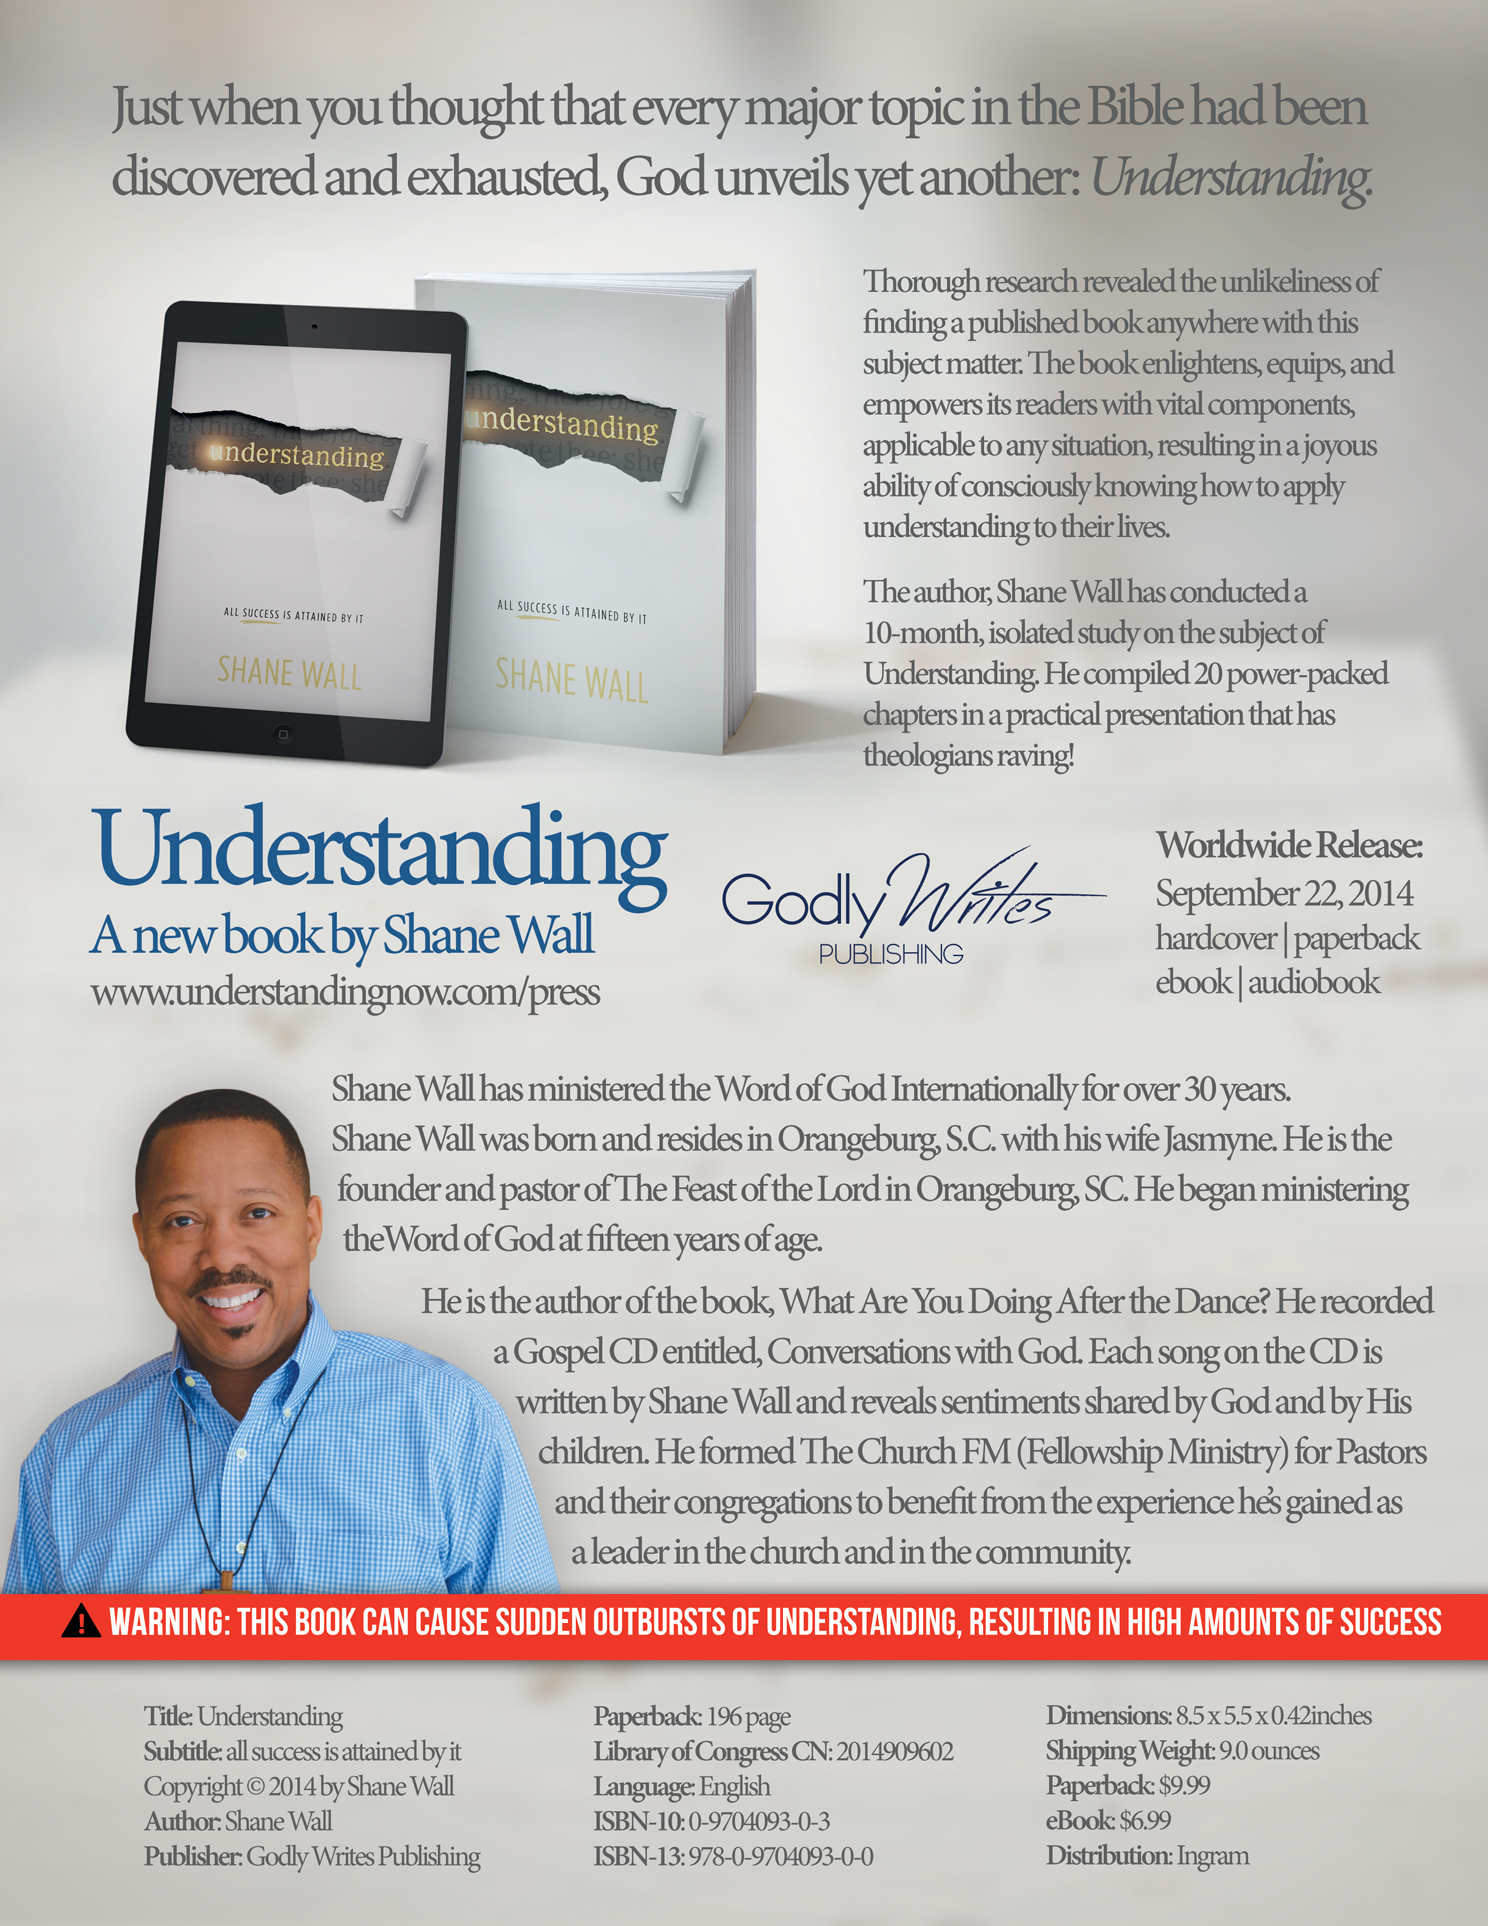 an understanding of success Understanding: all success is attained by it [shane wall] on amazoncom free shipping on qualifying offers just when you thought that every major topic in the bible had been discovered and exhausted, god unveils yet another.